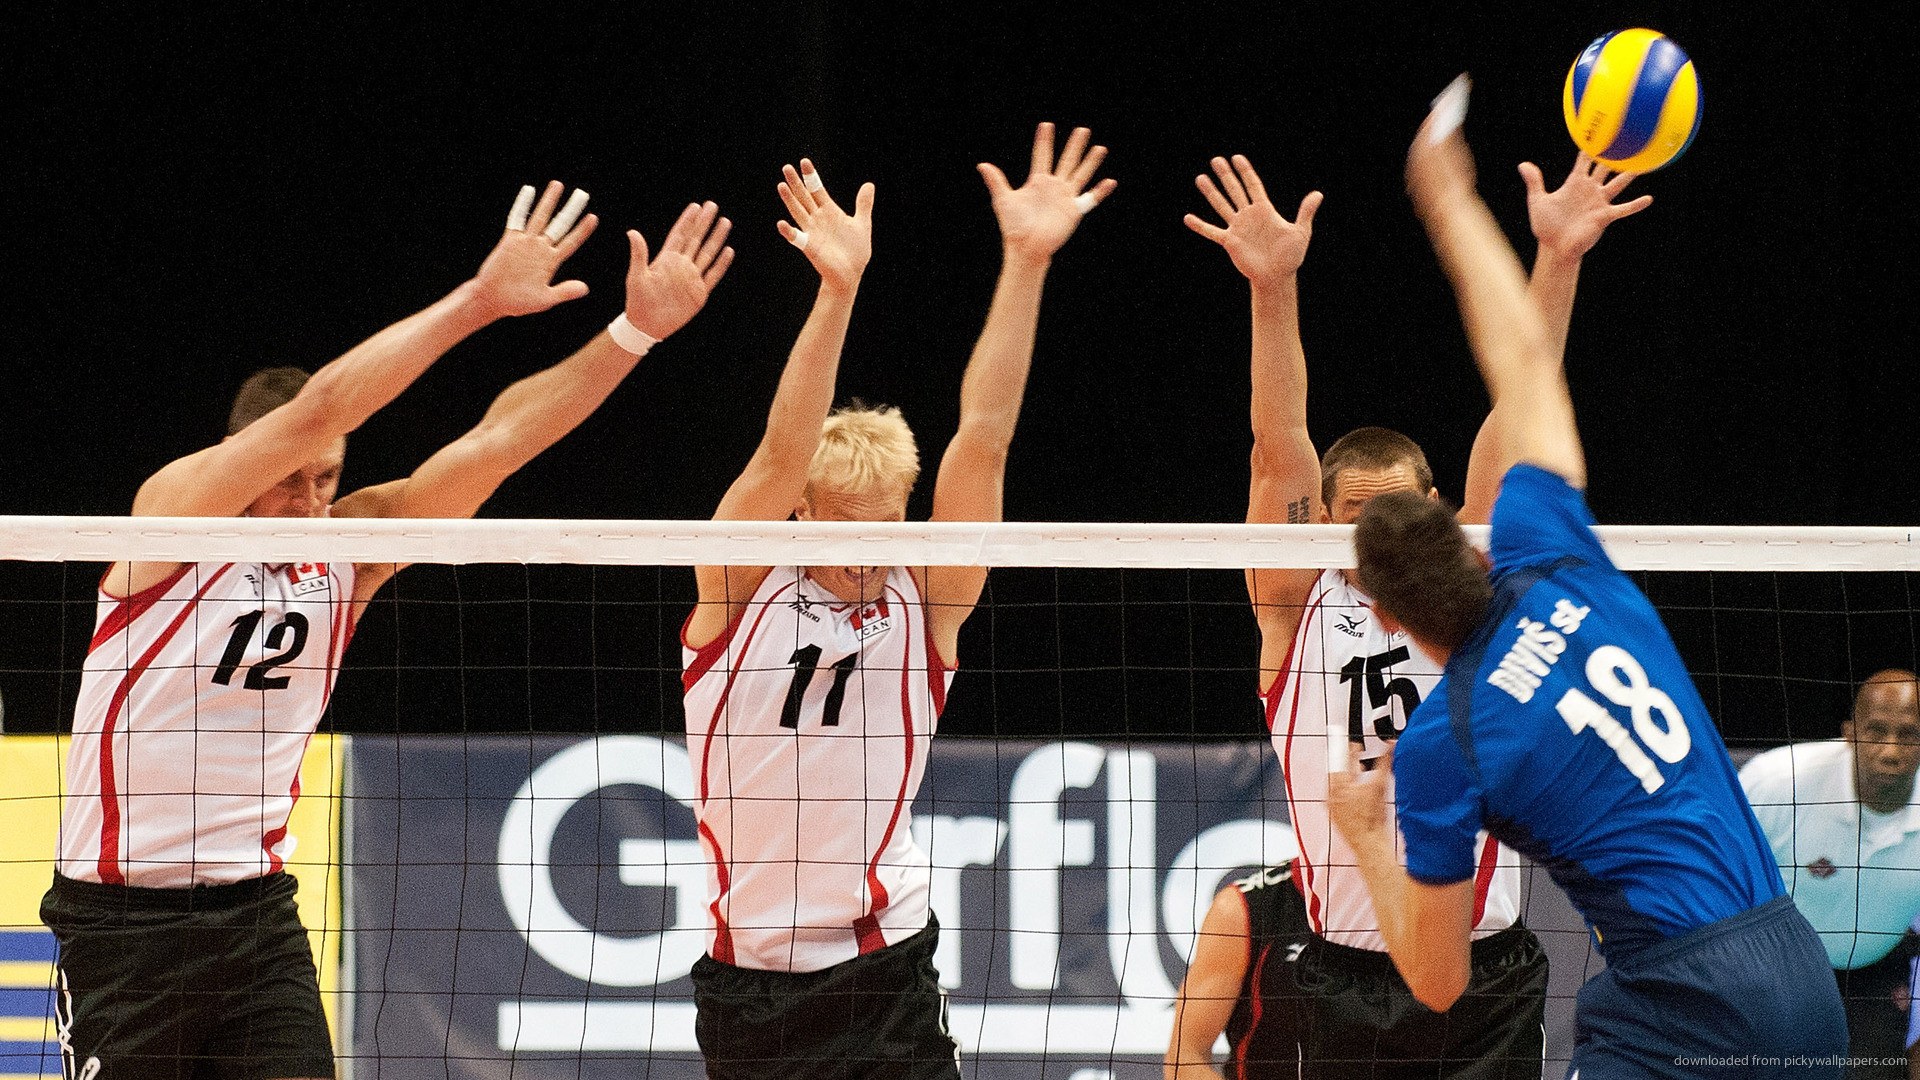 Sport Wallpaper Volleyball: Volley Wallpaper (70+ Immagini